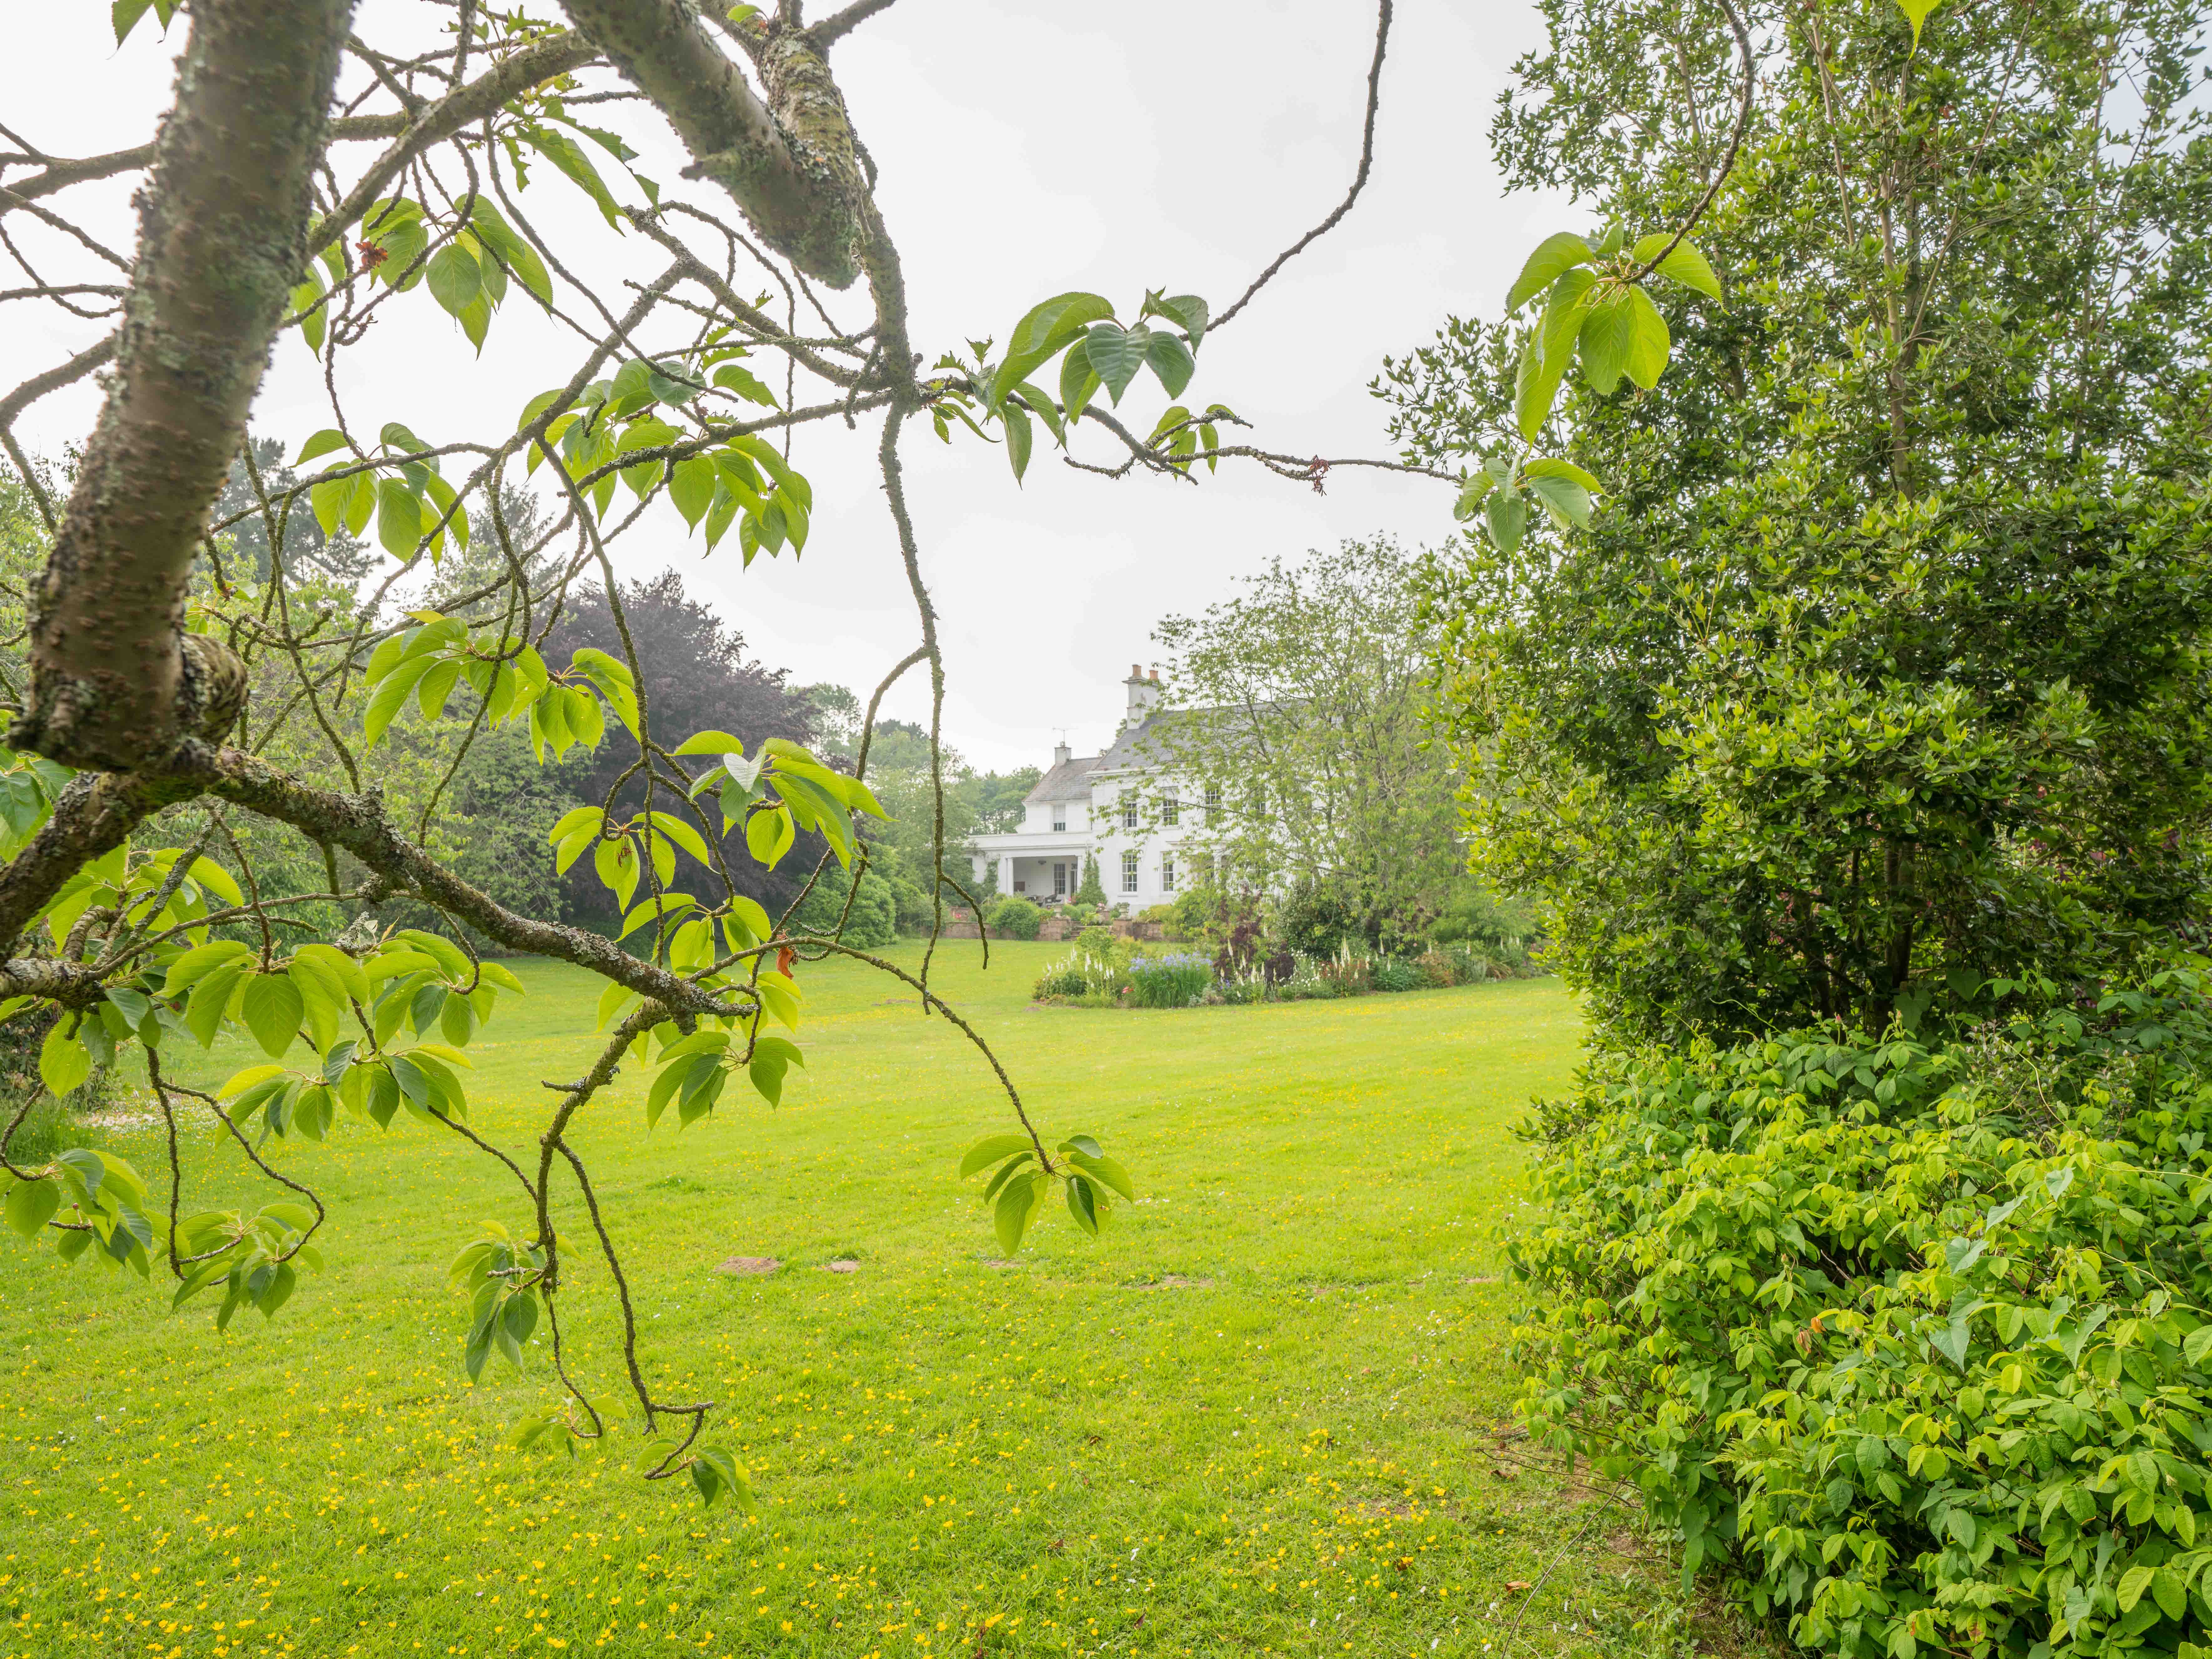 The extensive gardens surrounding the owners property are available to explore